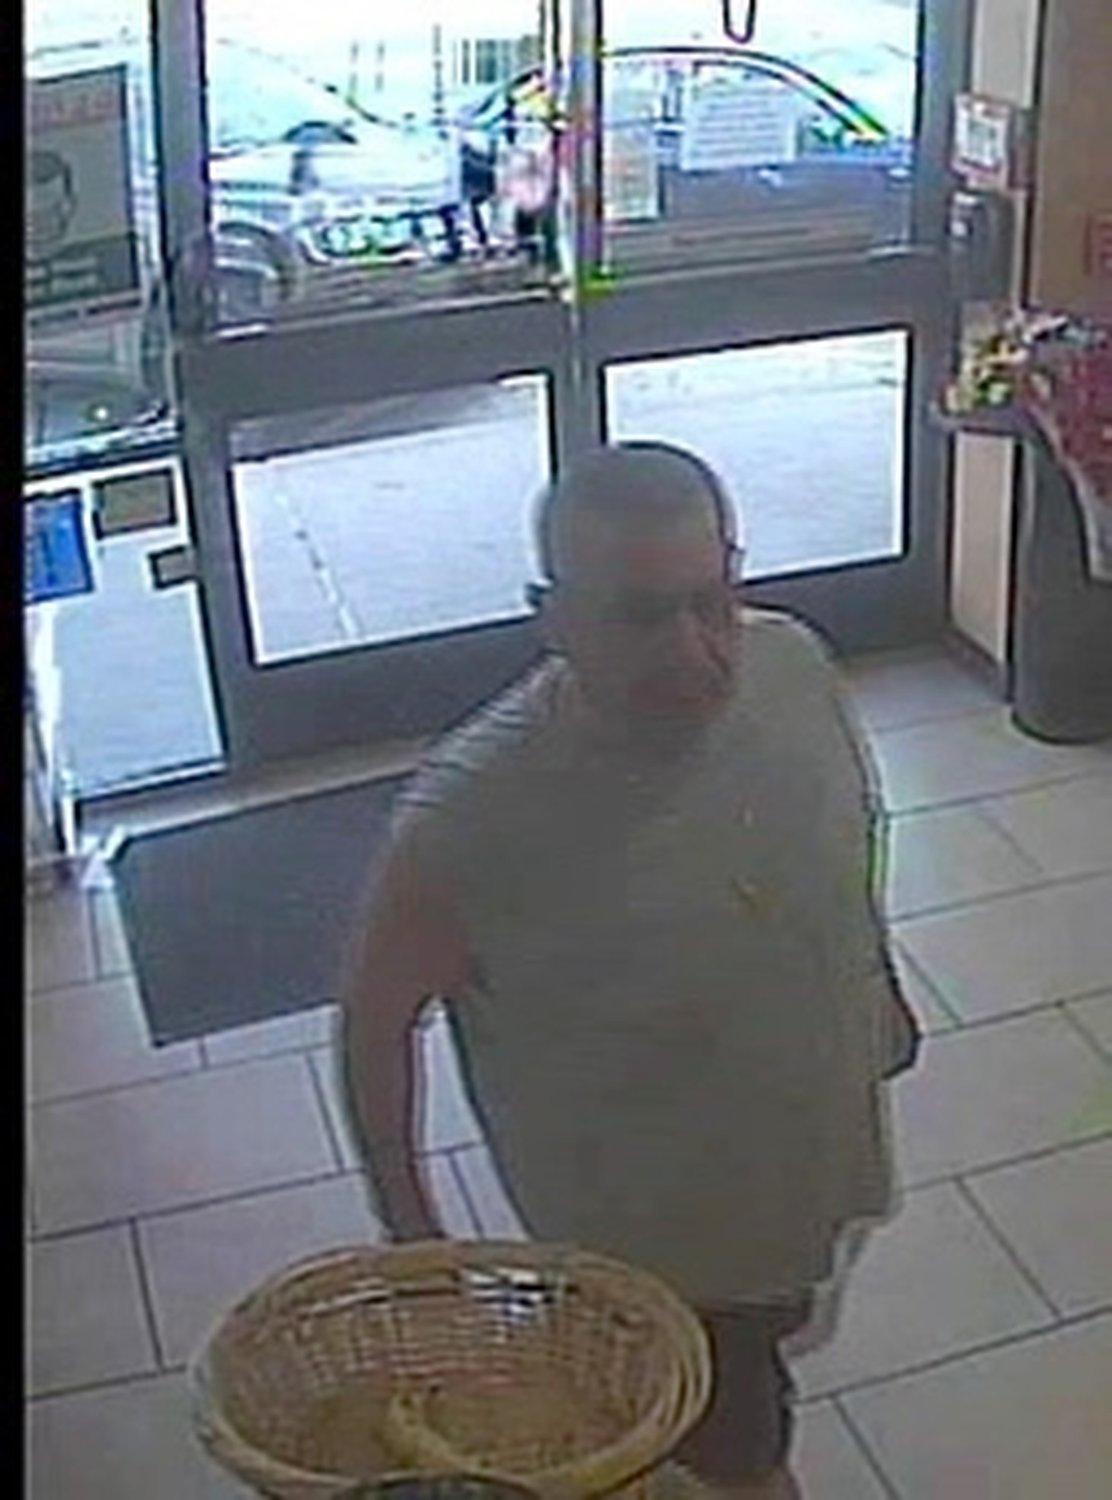 The man that allegedly robbed the 7-Eleven on Mill Road in Hewlett is described by police as white and in his 50s.